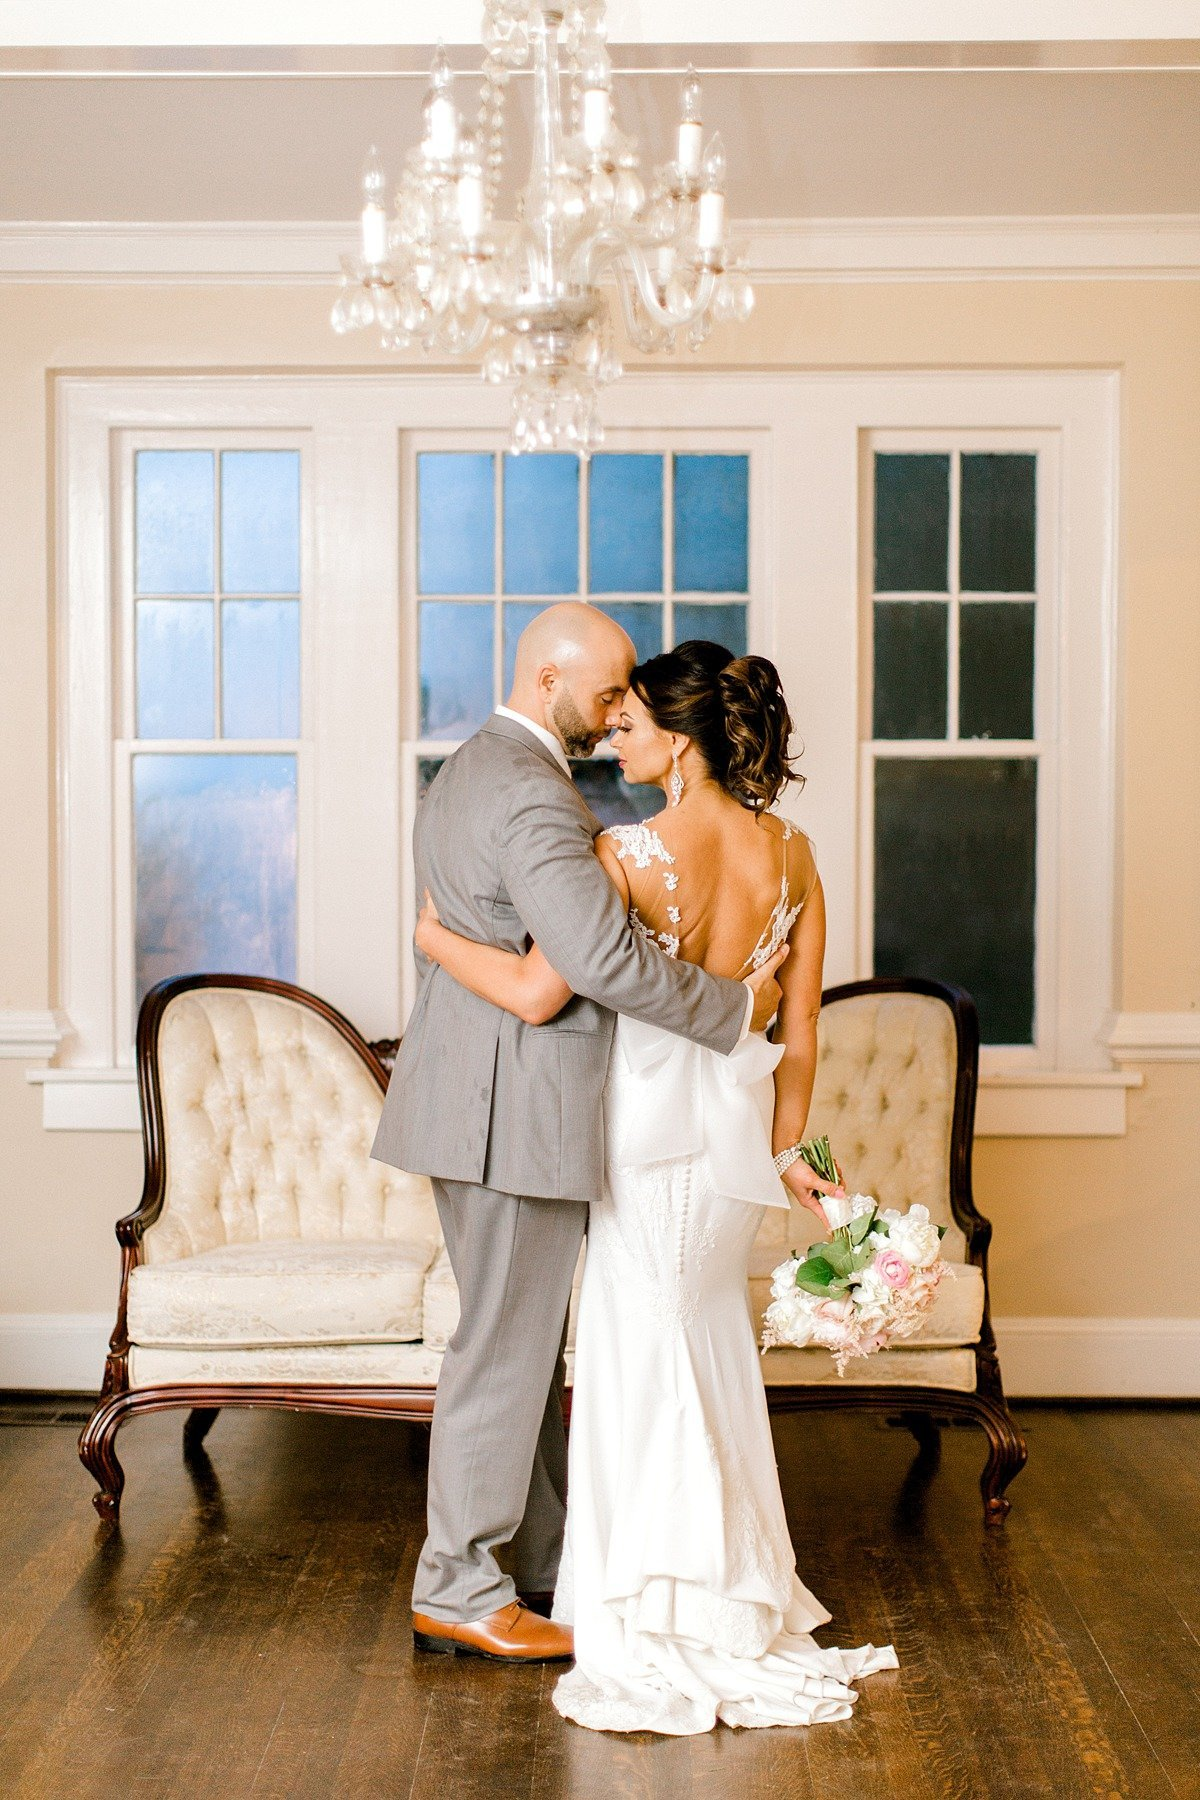 Elegant Spring Pink Abilena Plantation Indoor Rainy Wedding New Bern NC Andrew & Tianna Photography-124